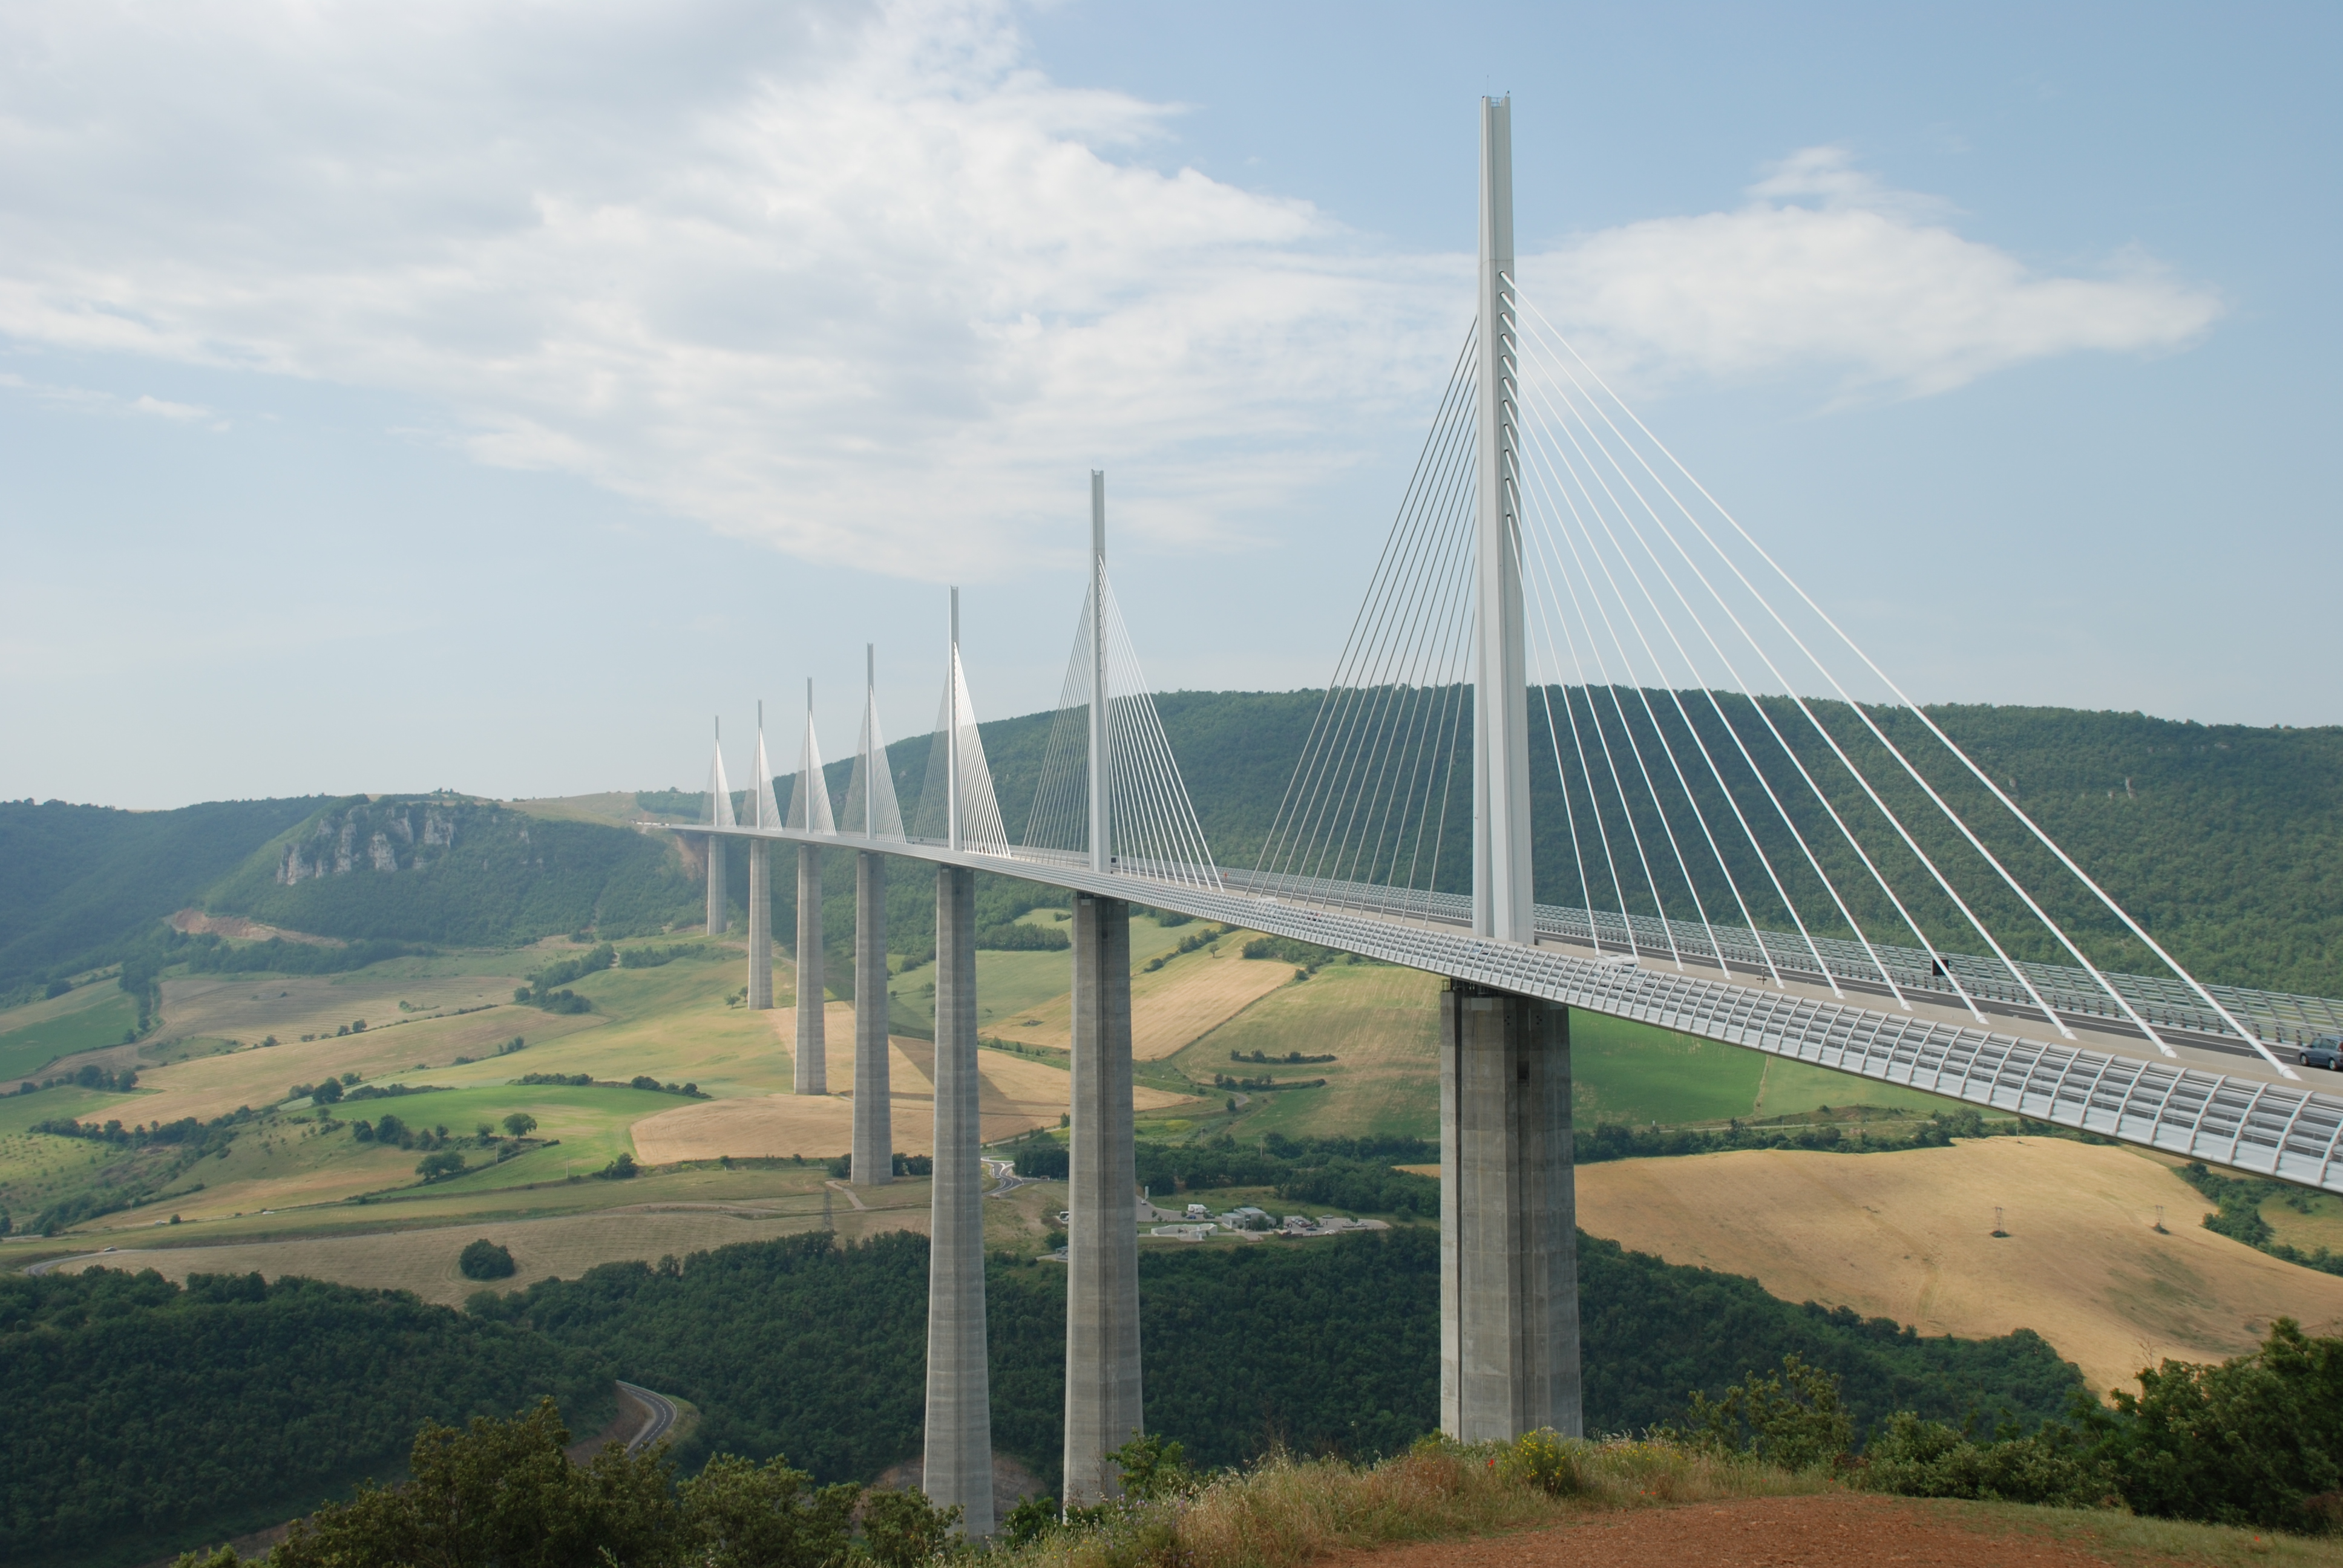 Millau Viaduct 4k Ultra HD Wallpaper and Background Image ... |Millau Viaduct Hd